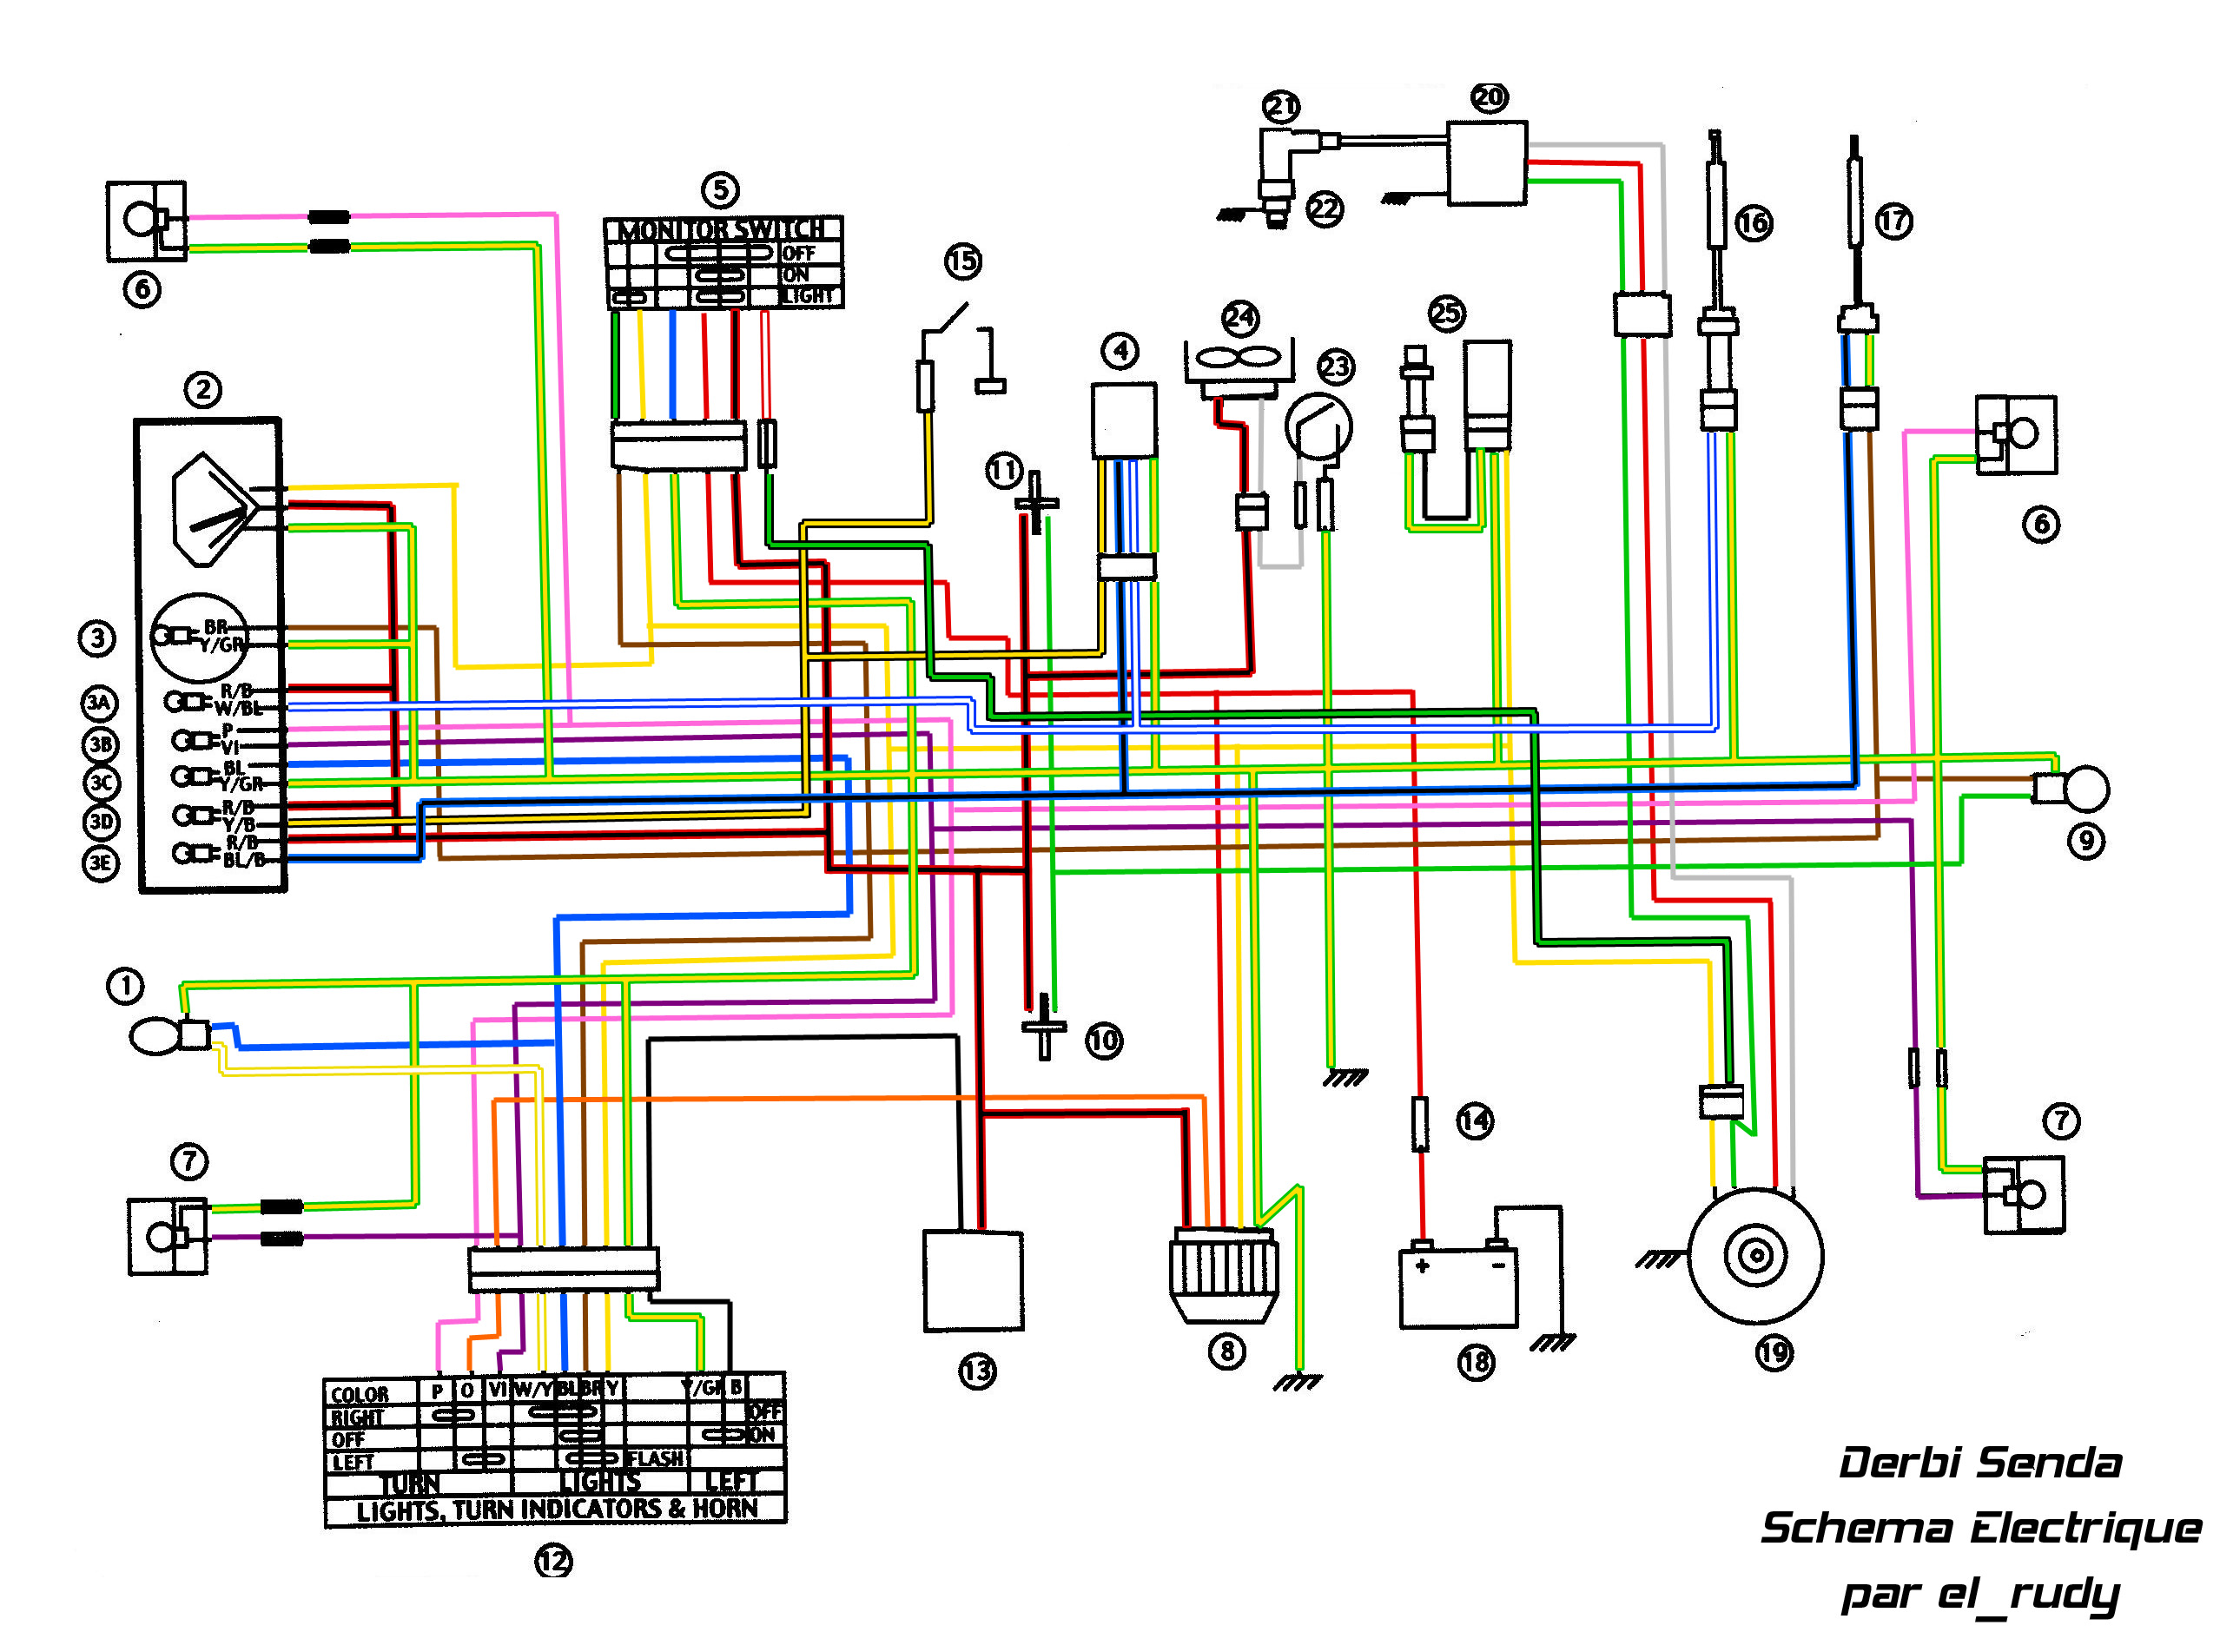 ew3vwm30 derbi senda 50 wiring diagram derbi senda 49 \u2022 wiring diagrams j 50cc scooter wiring diagram at fashall.co